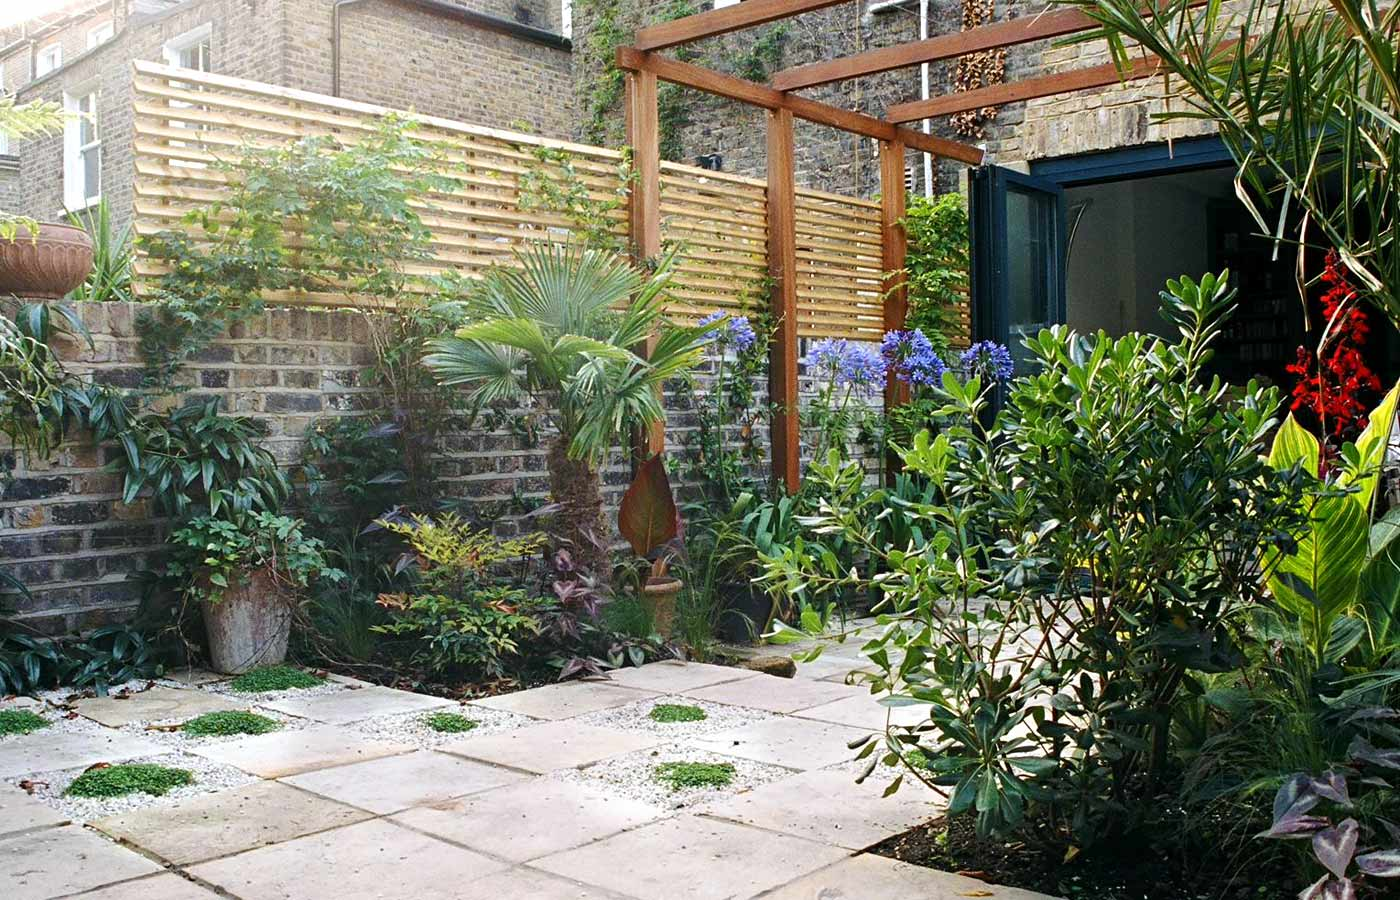 Courtyard garden design north london garden design for Courtyard landscape design